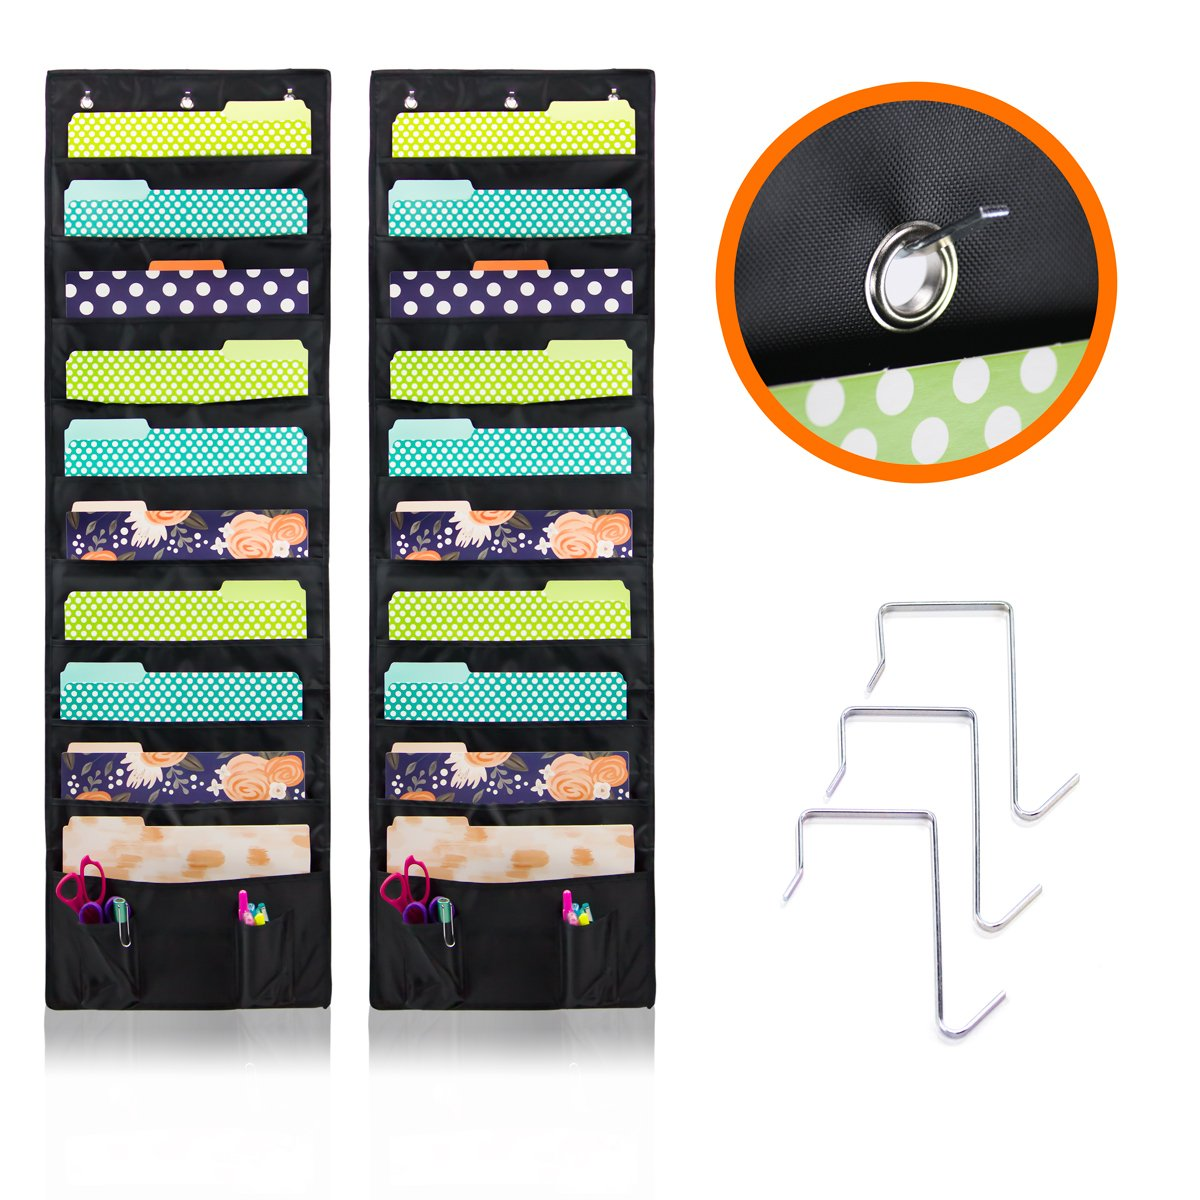 Best Storage Pocket Chart Includes: 20 Large Deep Pockets 4 Small Pockets for Accessories /& 6 SS Hooks Best Organizer for Office Wall Cascading Hanging File /& Folder Holder Home /& Classroom